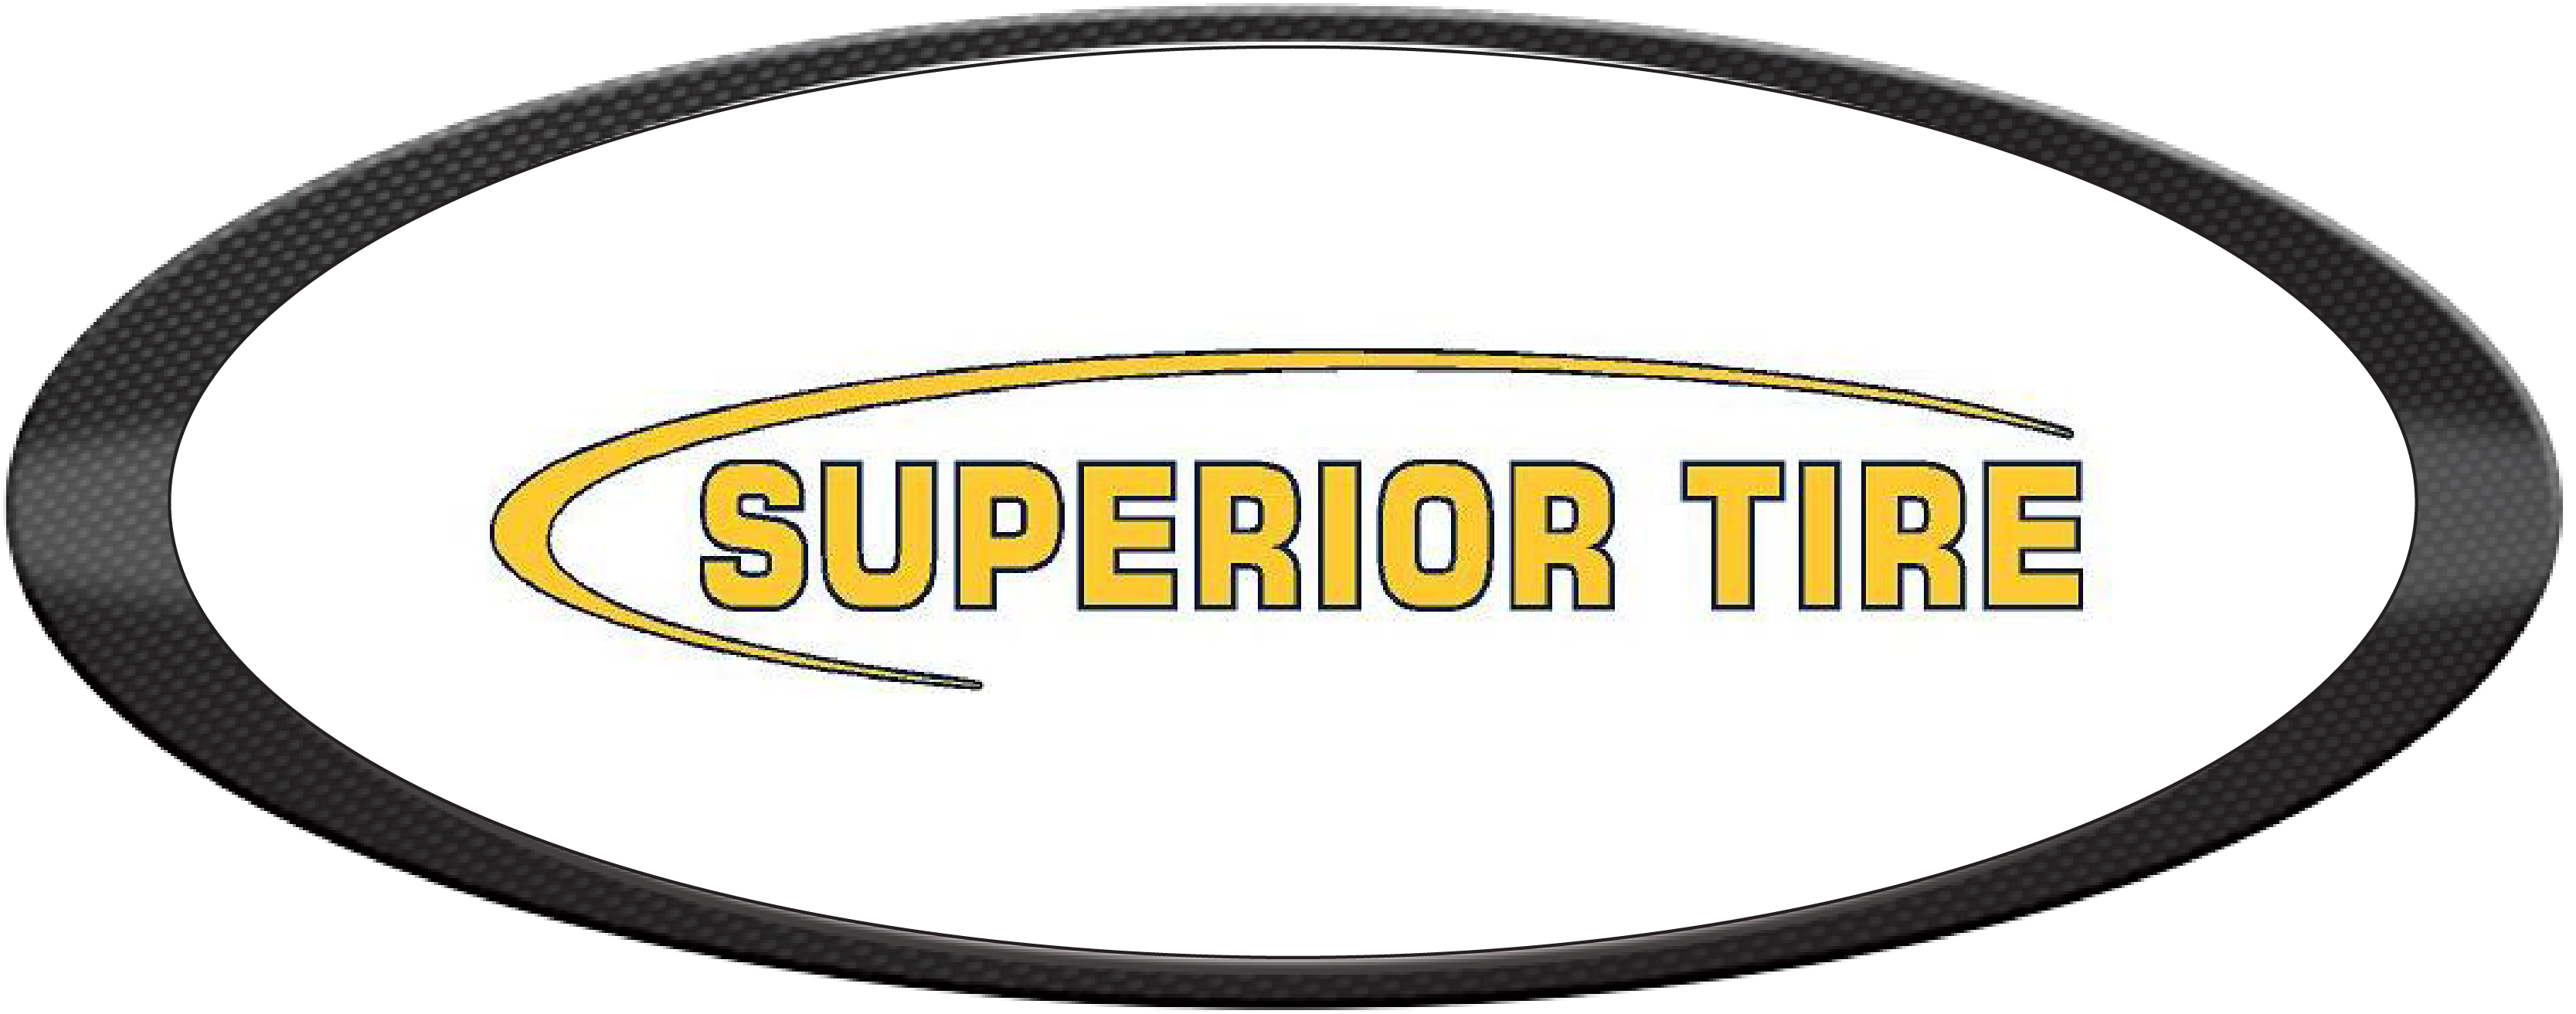 Superior Tires in Bullhead City, Fort Mohave, Golden Valley and Kingman, AZ